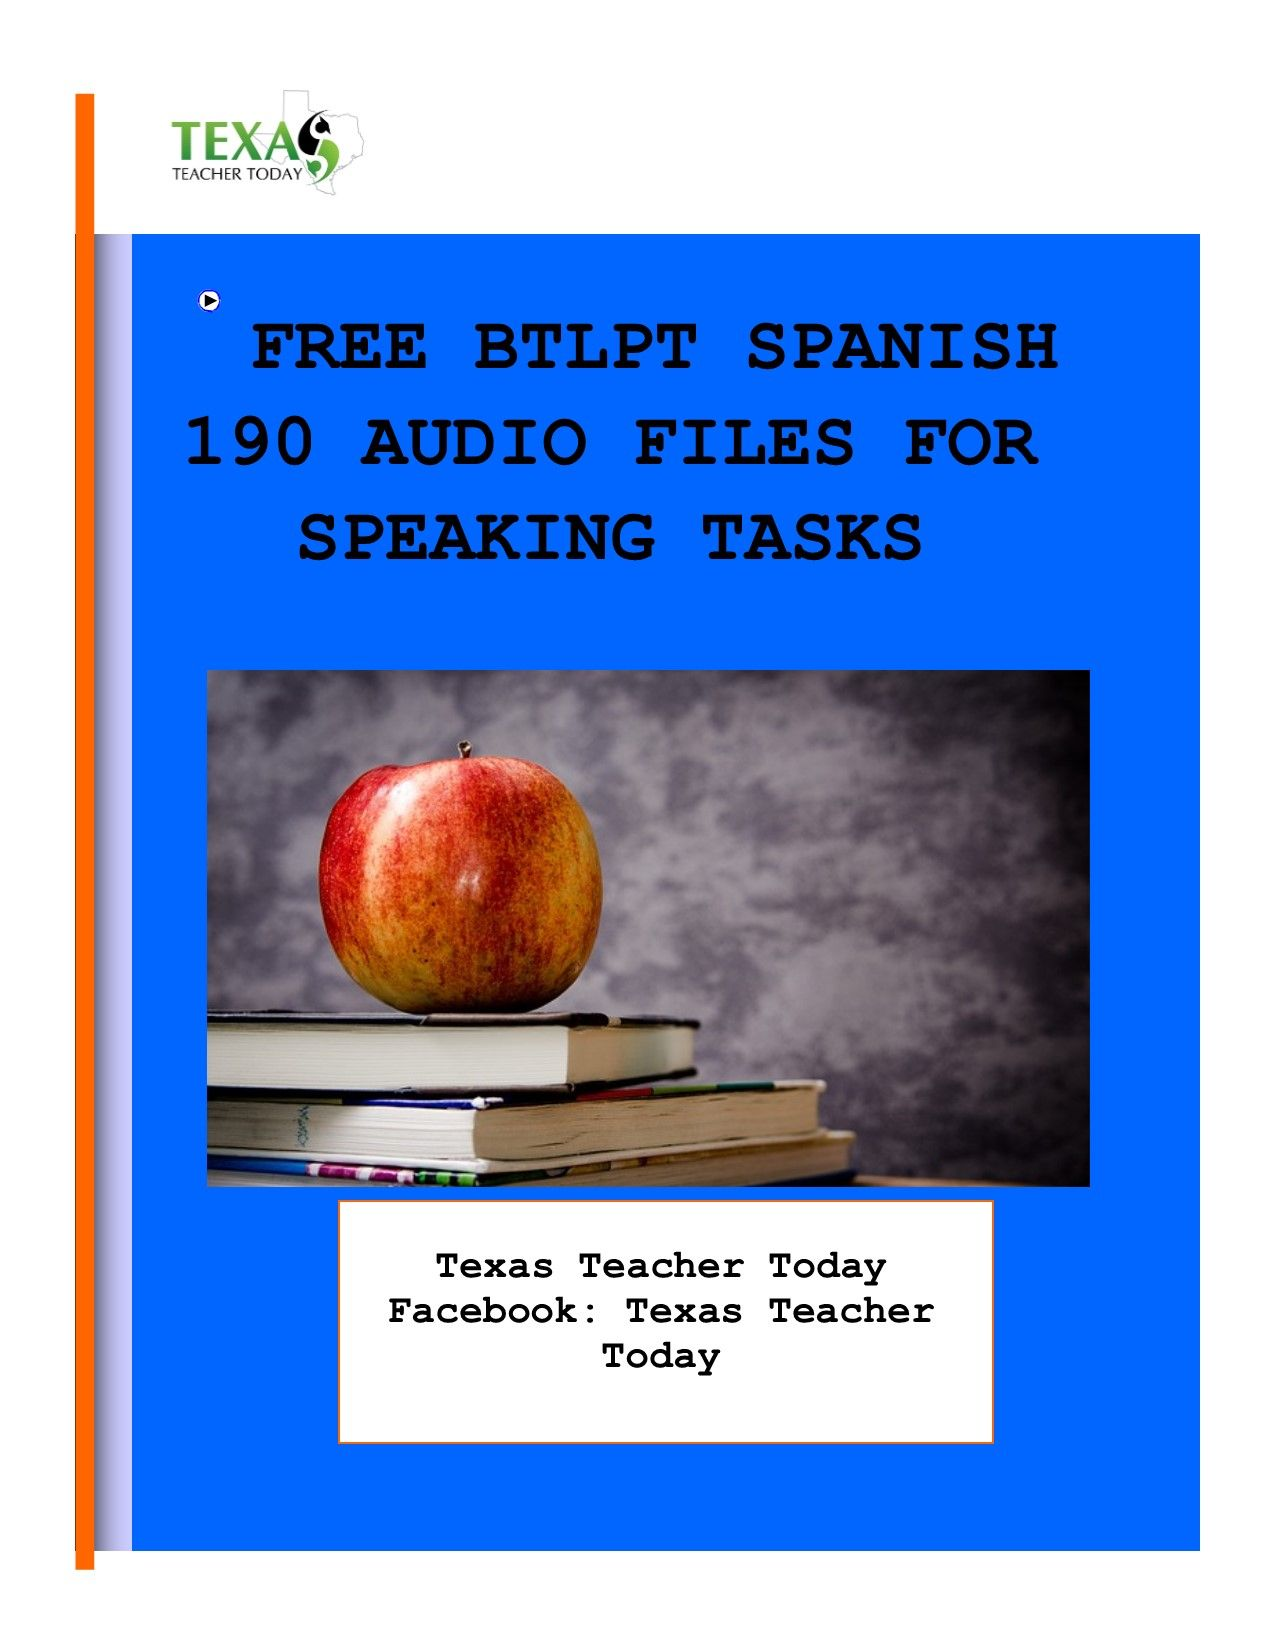 FREE audio files for speaking/oral tasks for the BTLPT Spanish 190 exam.  #BTLPTSpanish #BTLPTSpanish190